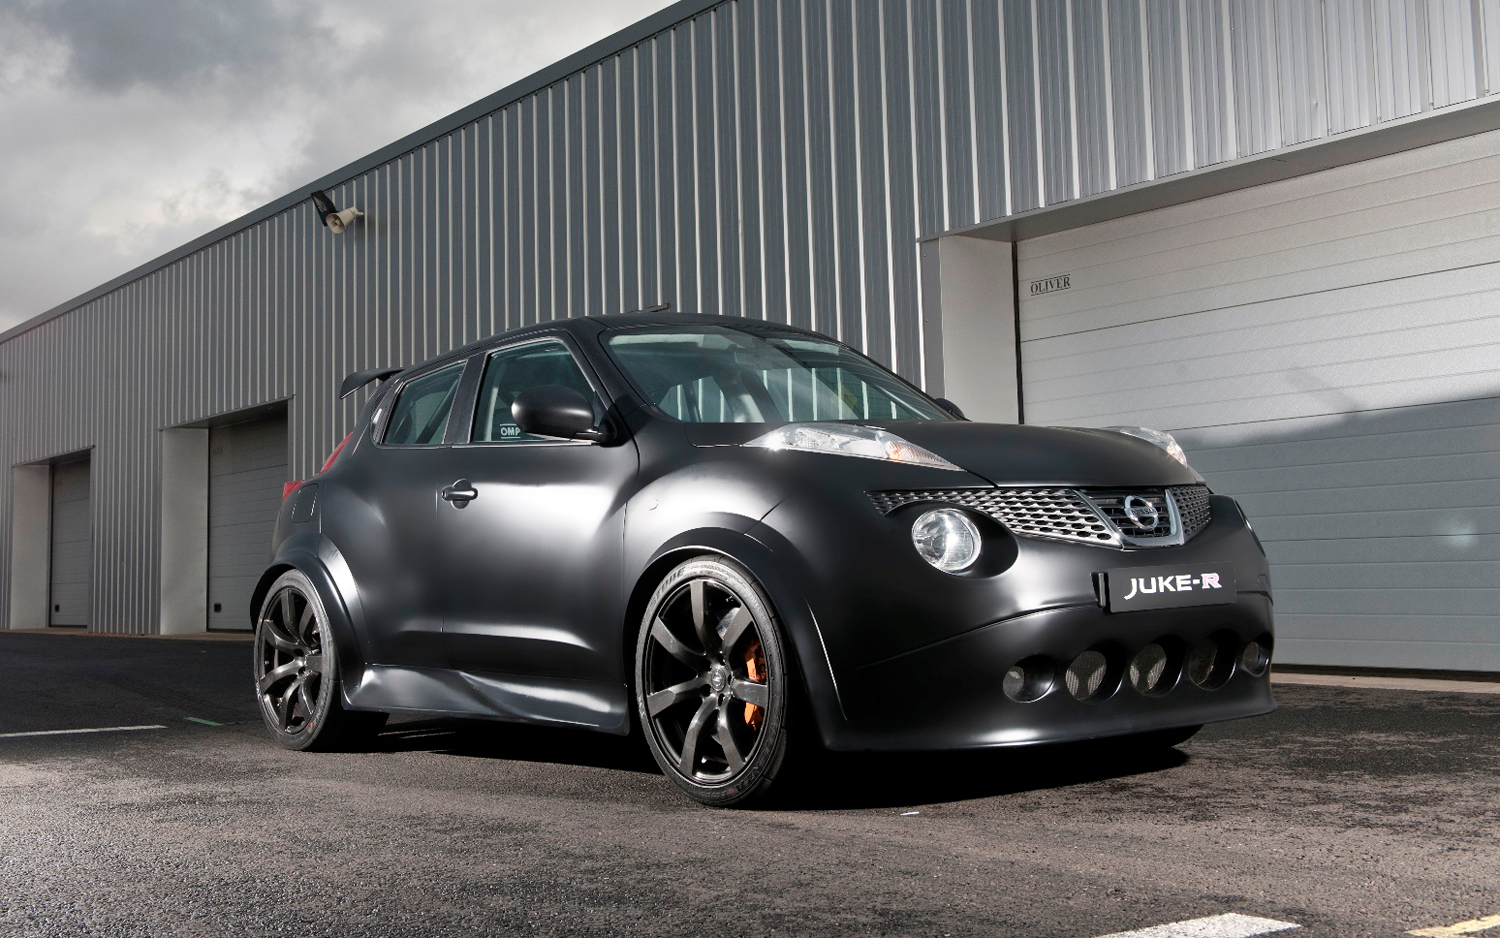 Juke R Specs Revealed, Nissan Claims Worldu0027s Fastest Crossover: 0 62 MPH In  3.7 Seconds